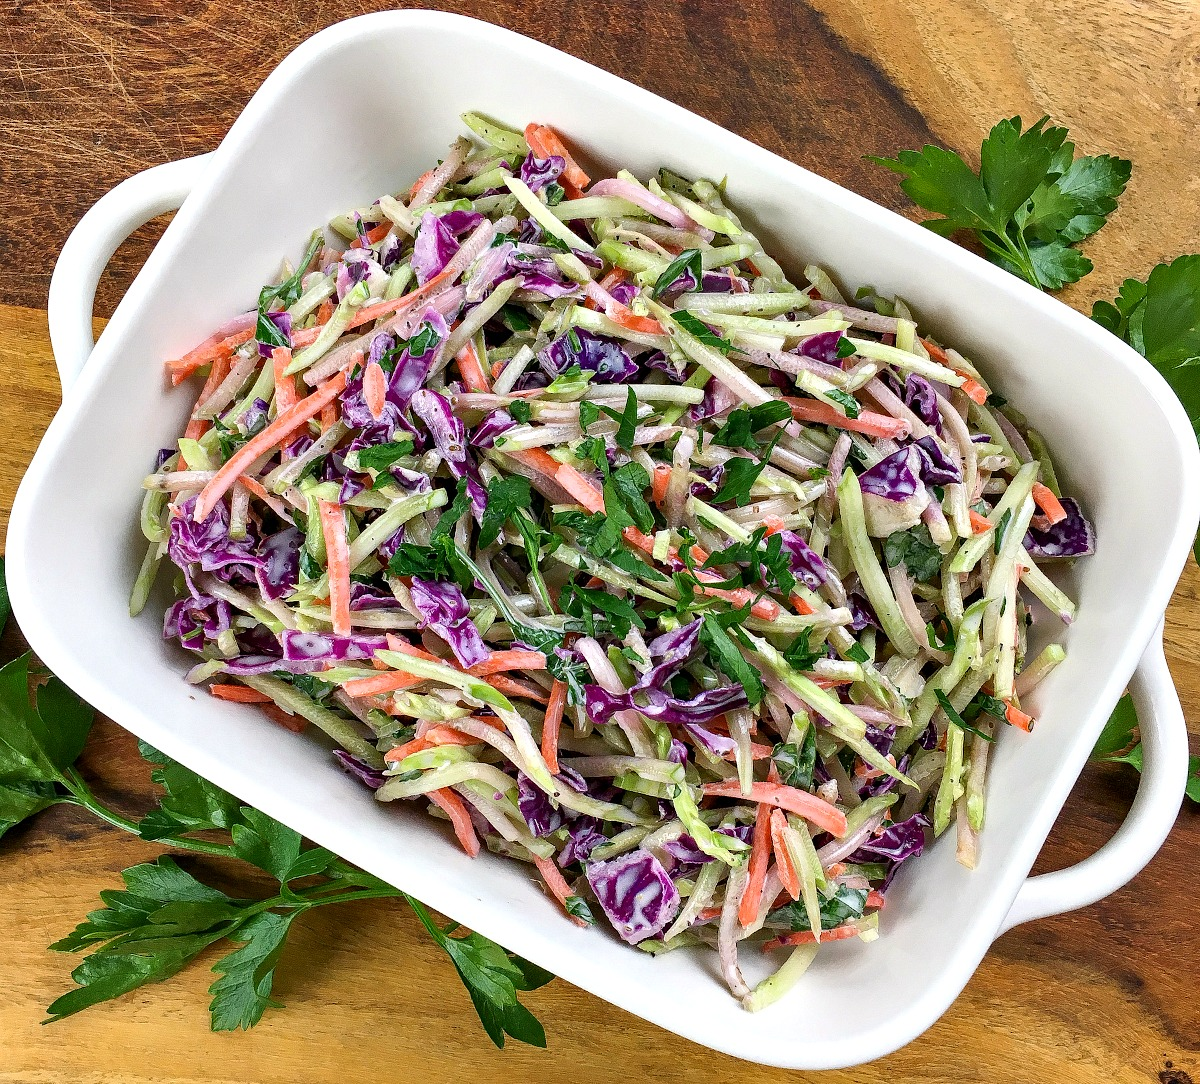 Do you want a quick low carb recipe that won't heat up your house? Our Crunchy Broccoli Slaw is super easy to make in about 5 minutes and is keto diet friendly.